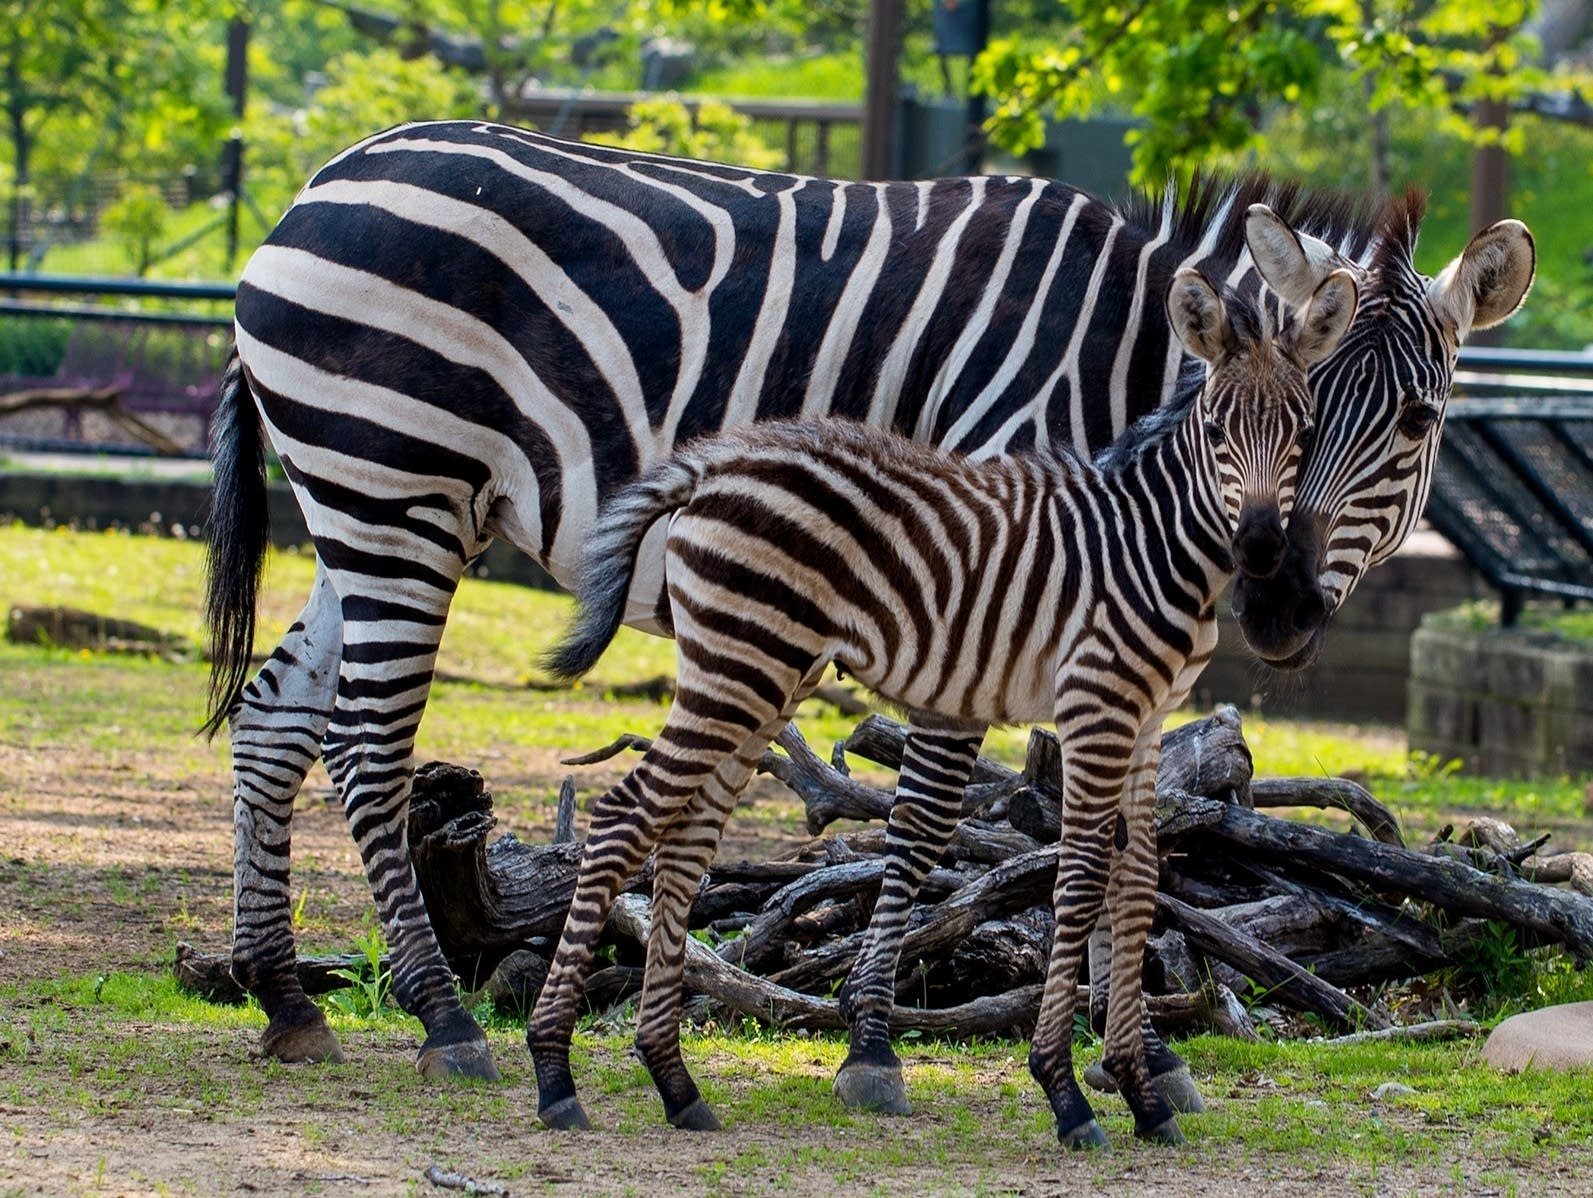 The Como Zoo asks the public to help pick the name for its new baby zebra.